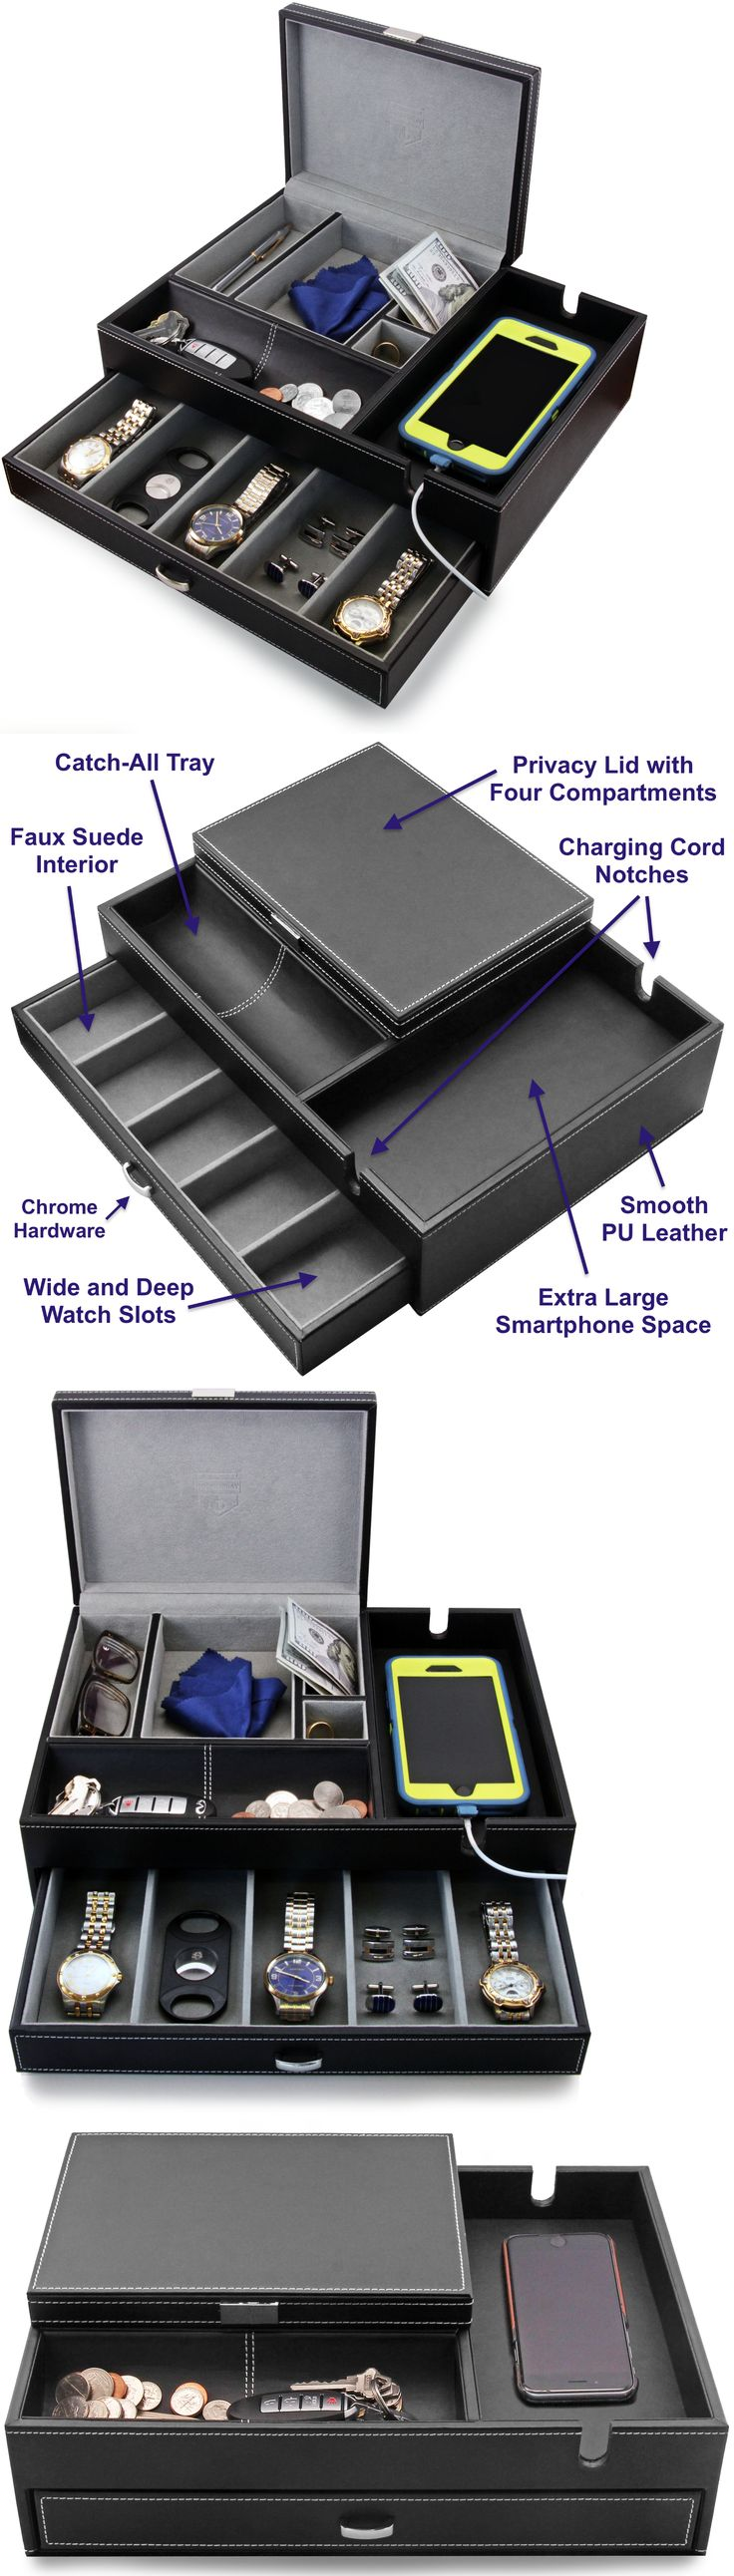 Multi-Purpose 168165: Houndsbay Big Dresser Valet Box And Mens Jewelry Organizer With Deep Drawer Slots -> BUY IT NOW ONLY: $64.99 on eBay!